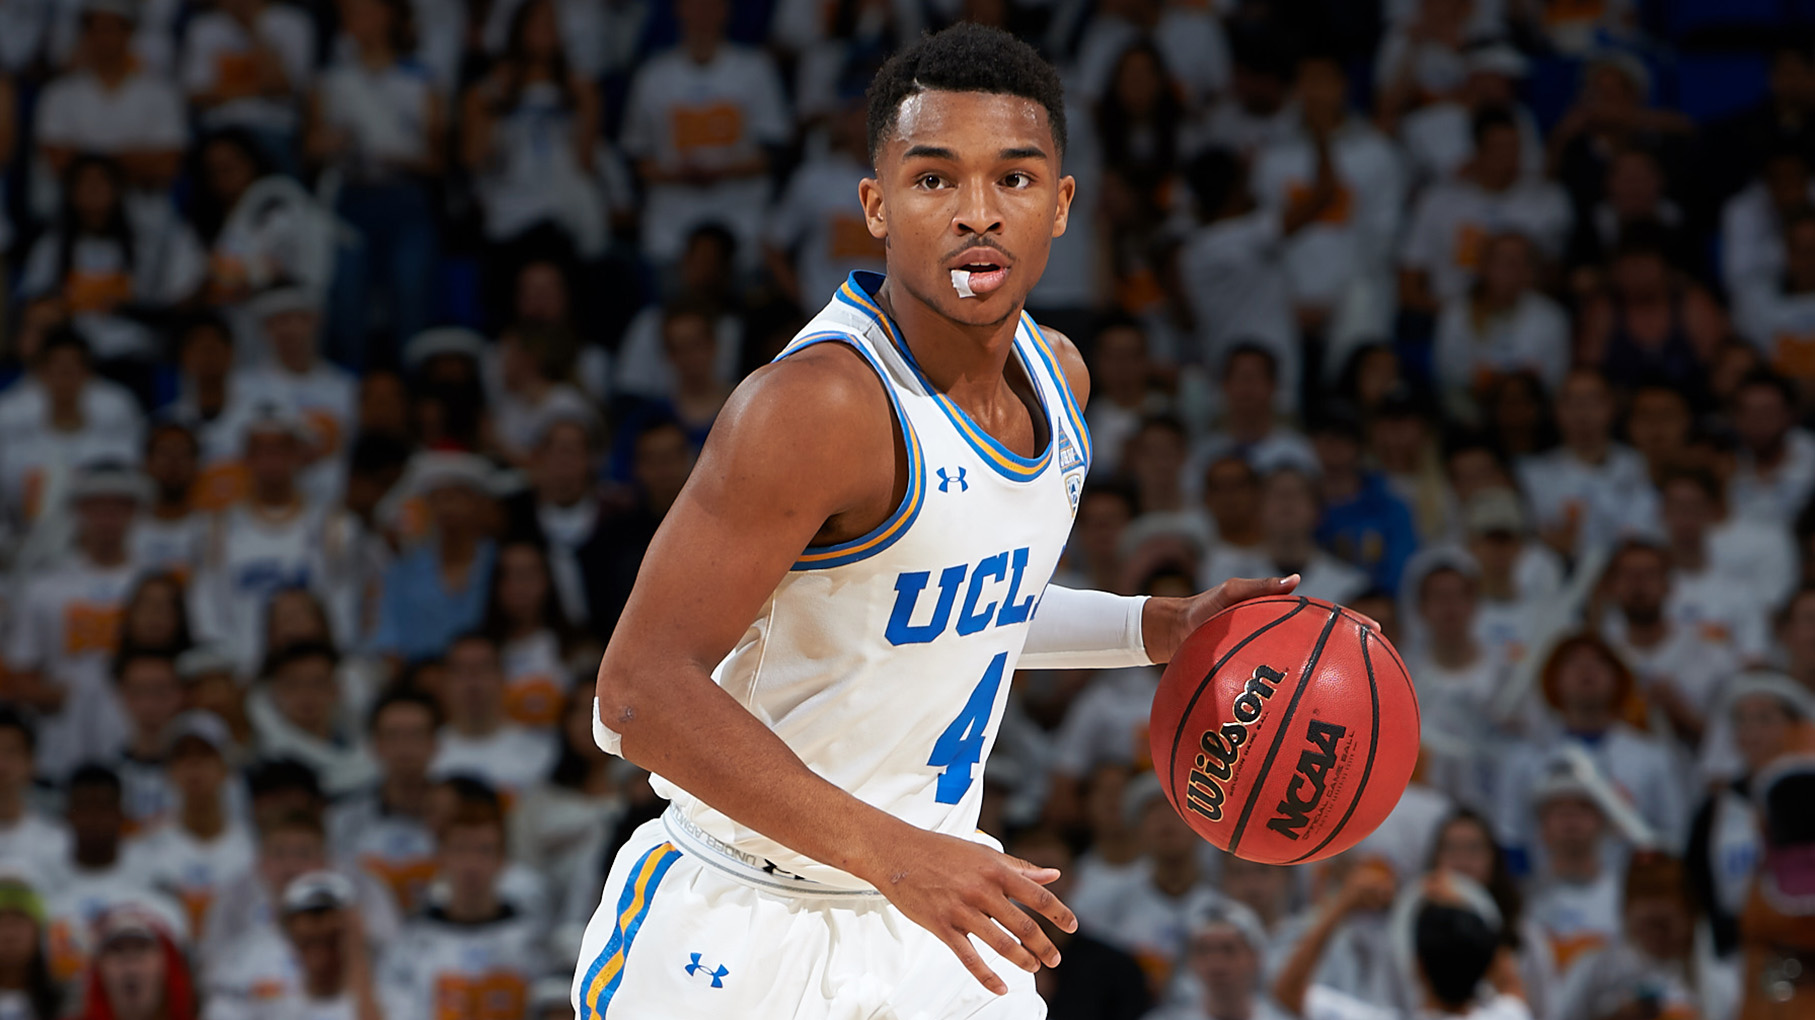 sports shoes 207e9 c934a UCLA Basketball to Face Belmont on Saturday - UCLA